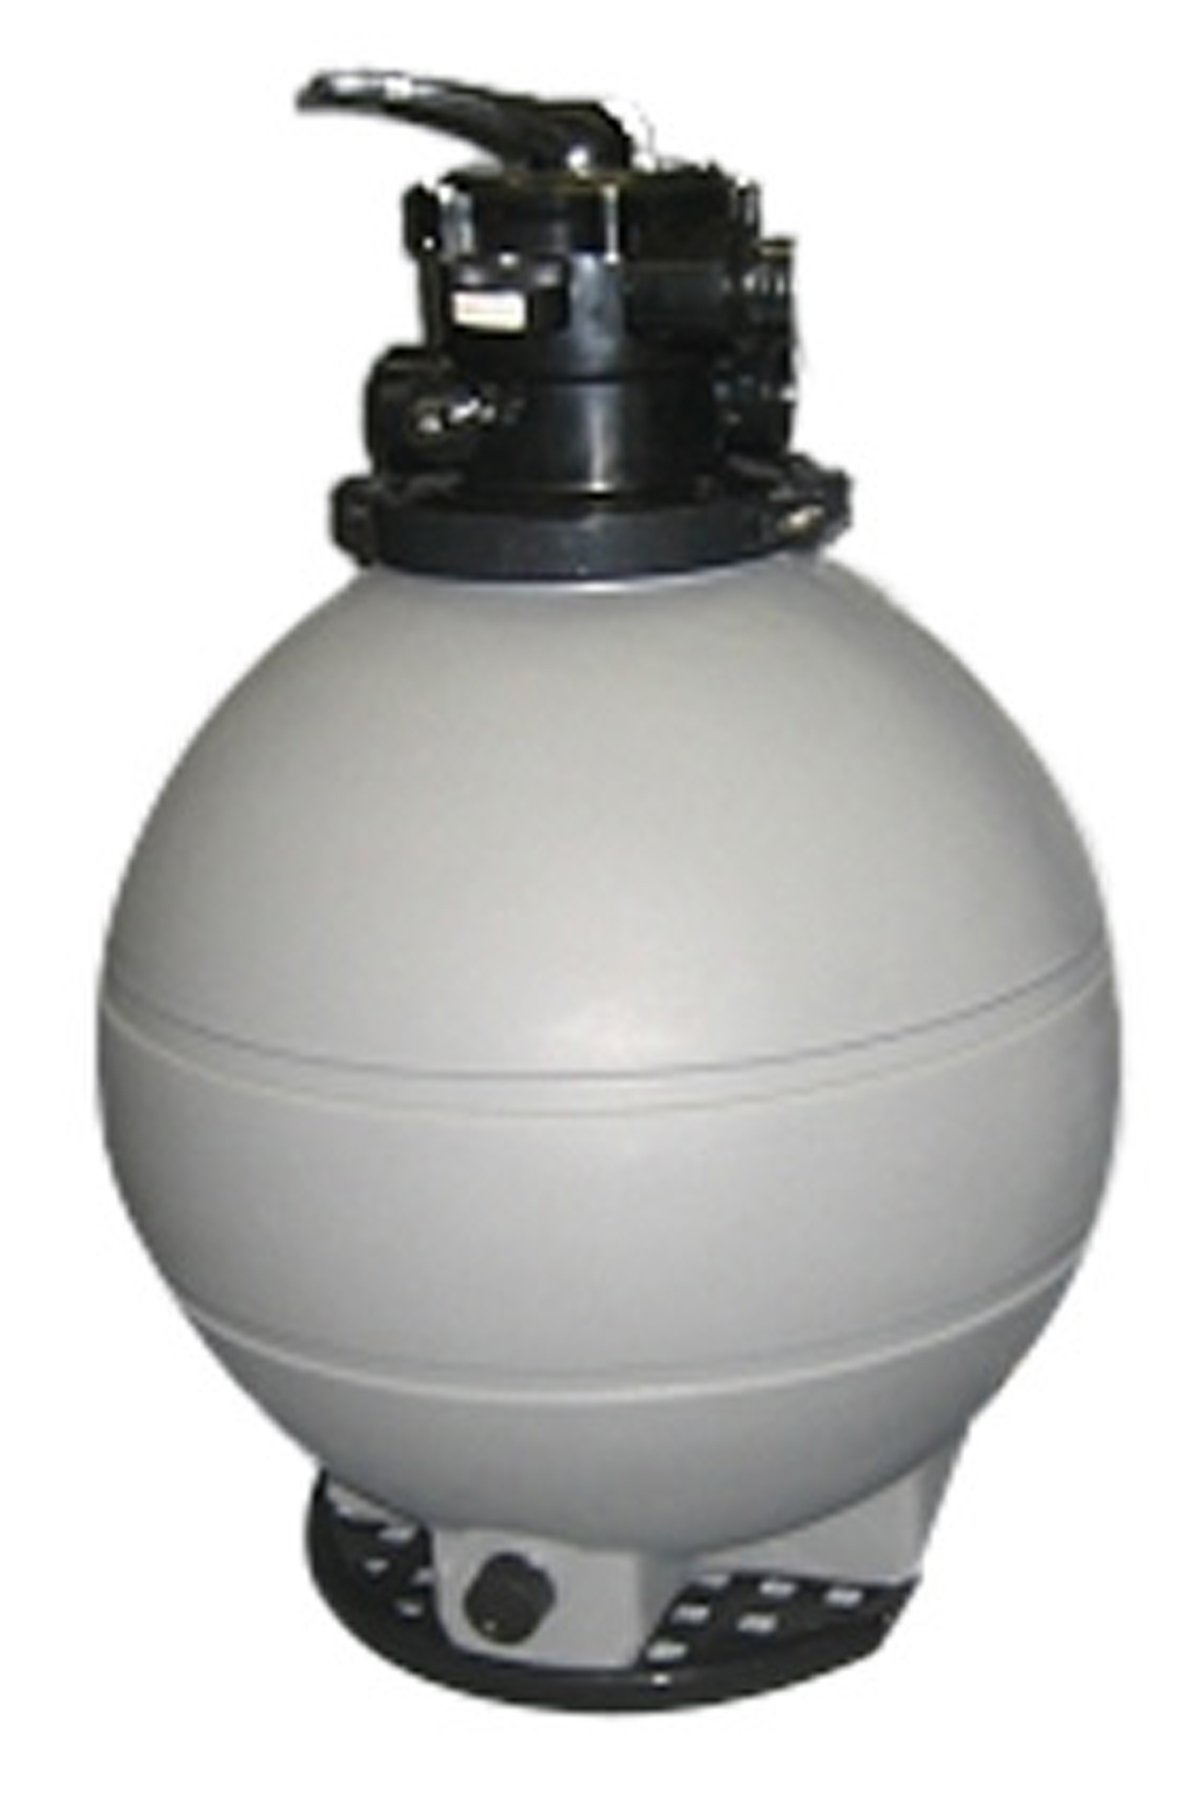 Rx Clear Patriot Sand Filter | Compatible with Intex/Pop Up Above Ground Pools | 22 Inch | 200 Lb Sand Capacity | for Above Ground Swimming Pools Up to 22,000 Gallons by Rx Clear